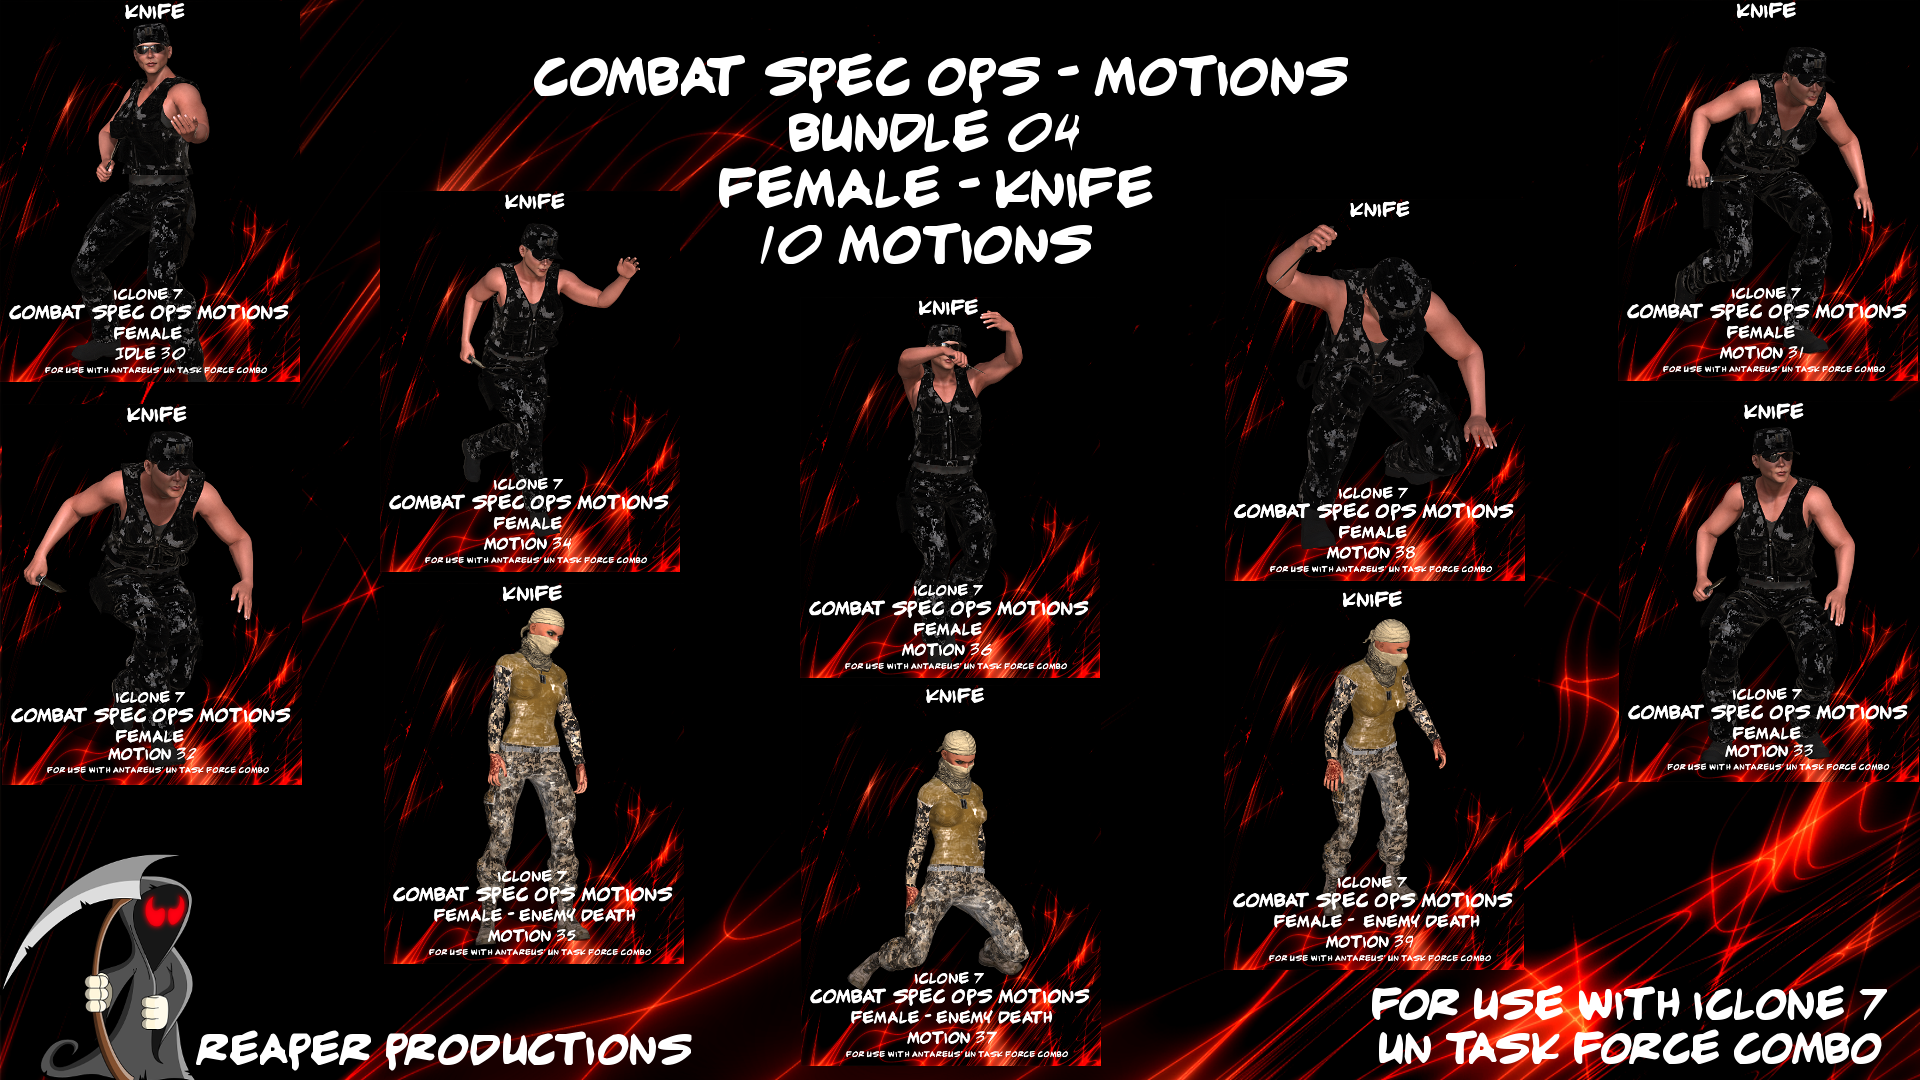 Spec Ops Motion Bundle 04 - Female Knife - Reallusion Marketplace